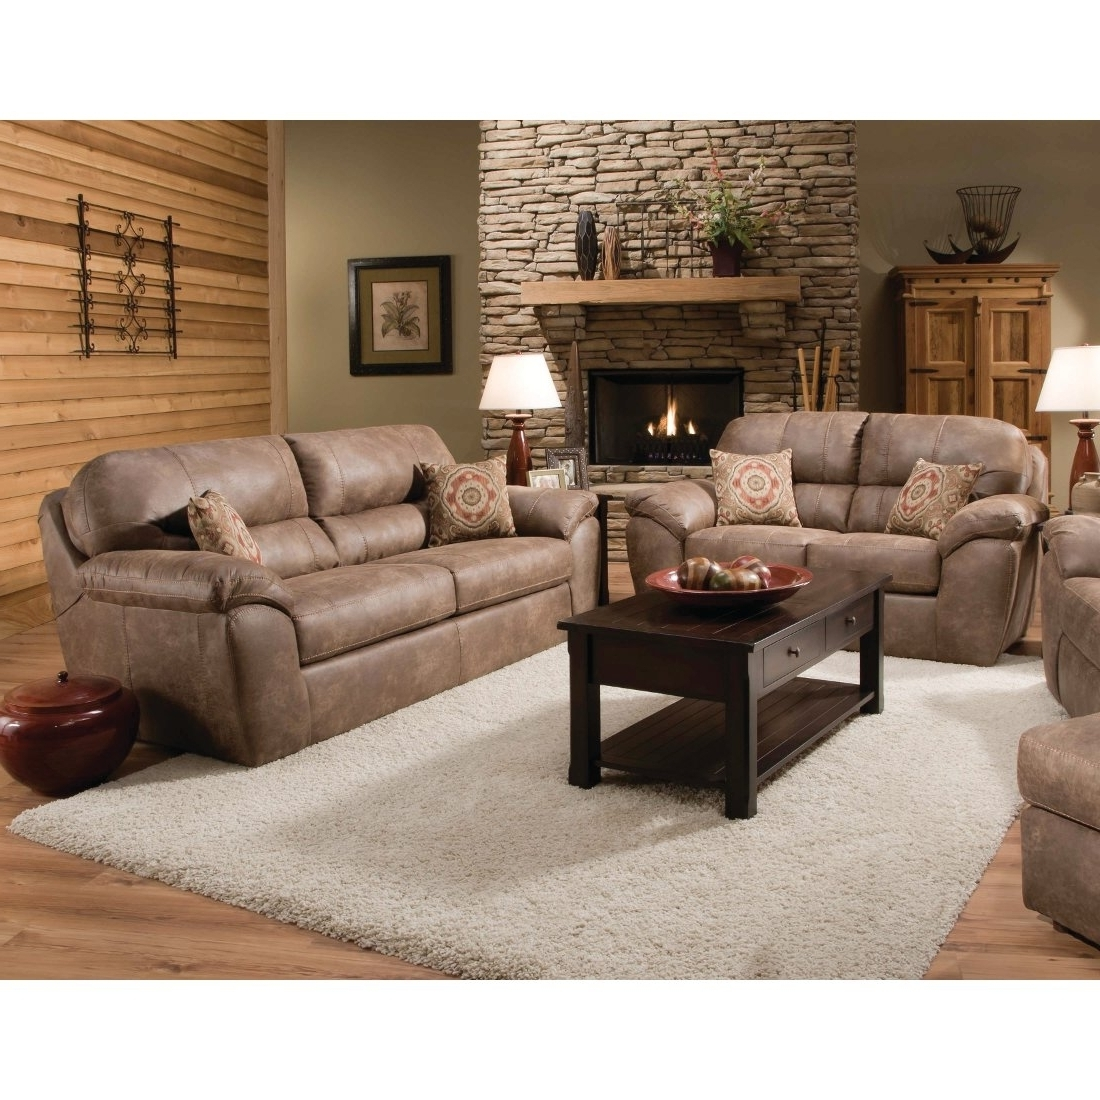 Brilliant Sectional Sofas Cincinnati – Buildsimplehome Within Newest Cincinnati Sectional Sofas (View 2 of 15)